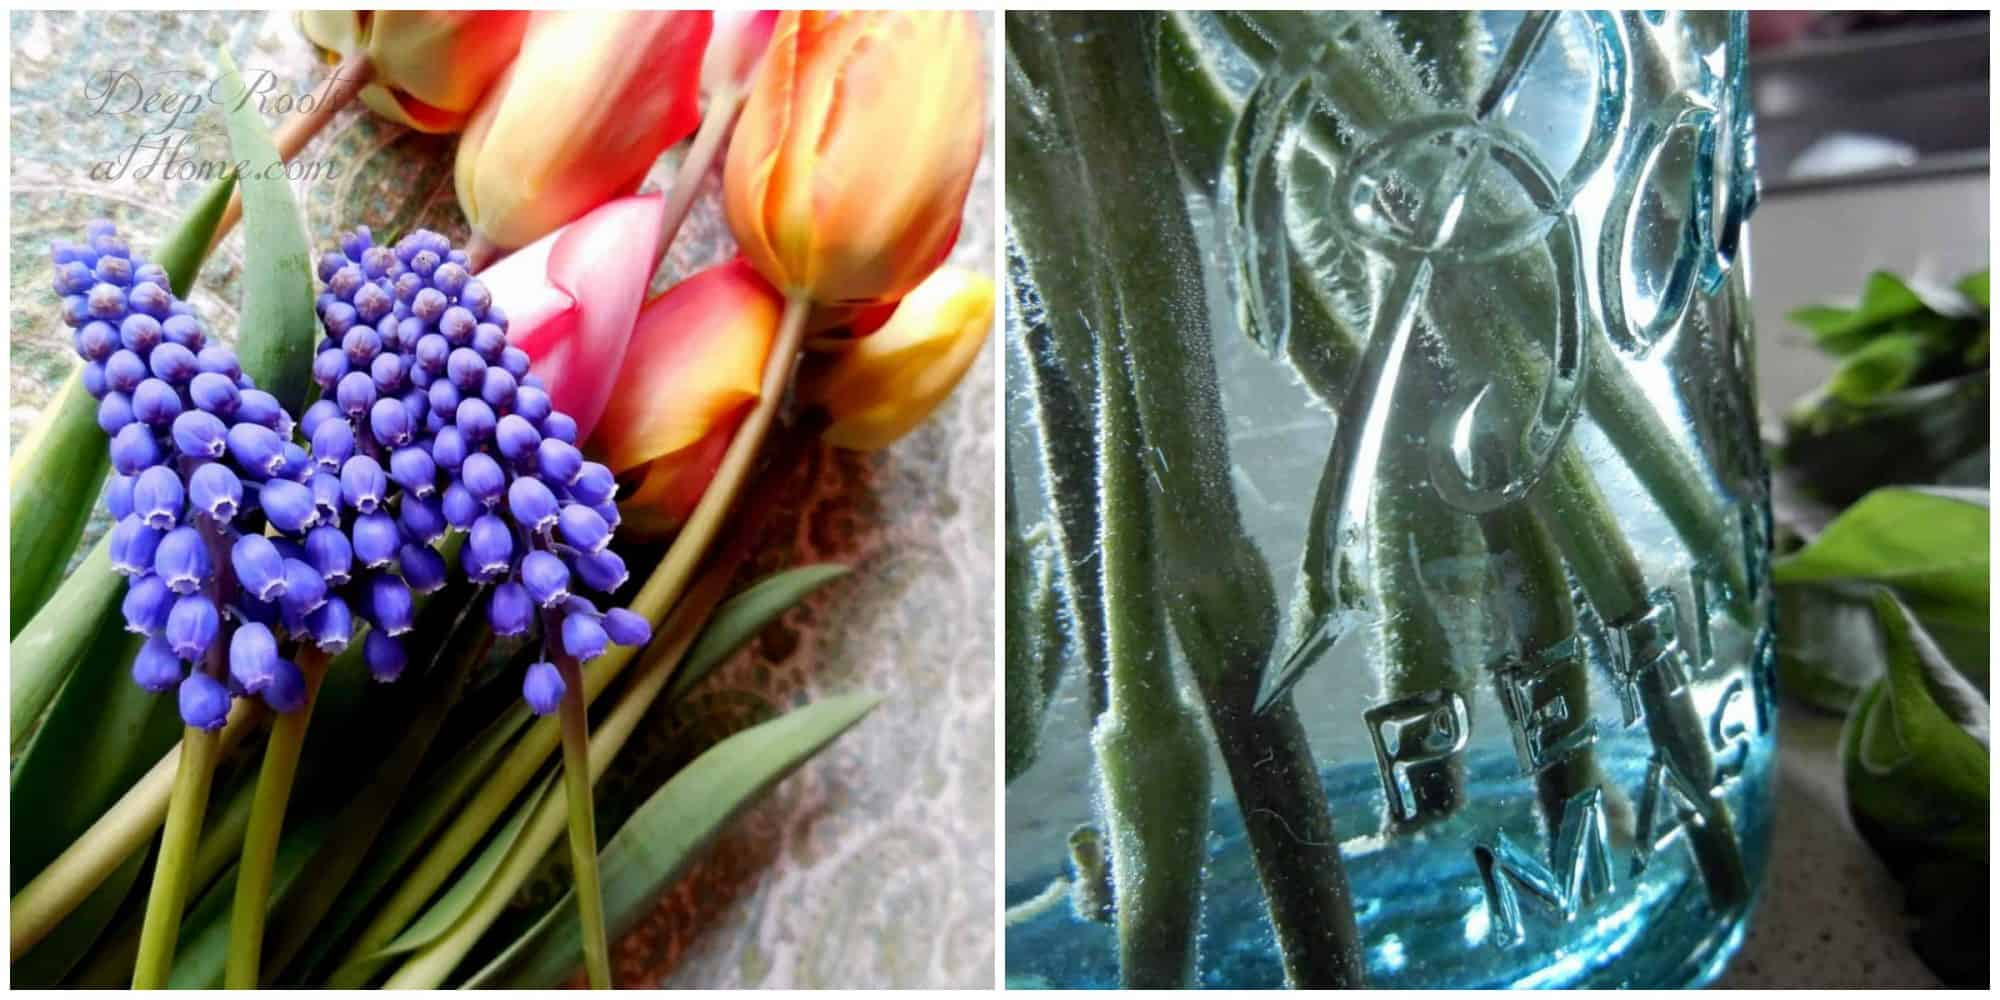 grape hyacinth and tulips and bubbles on stems in water